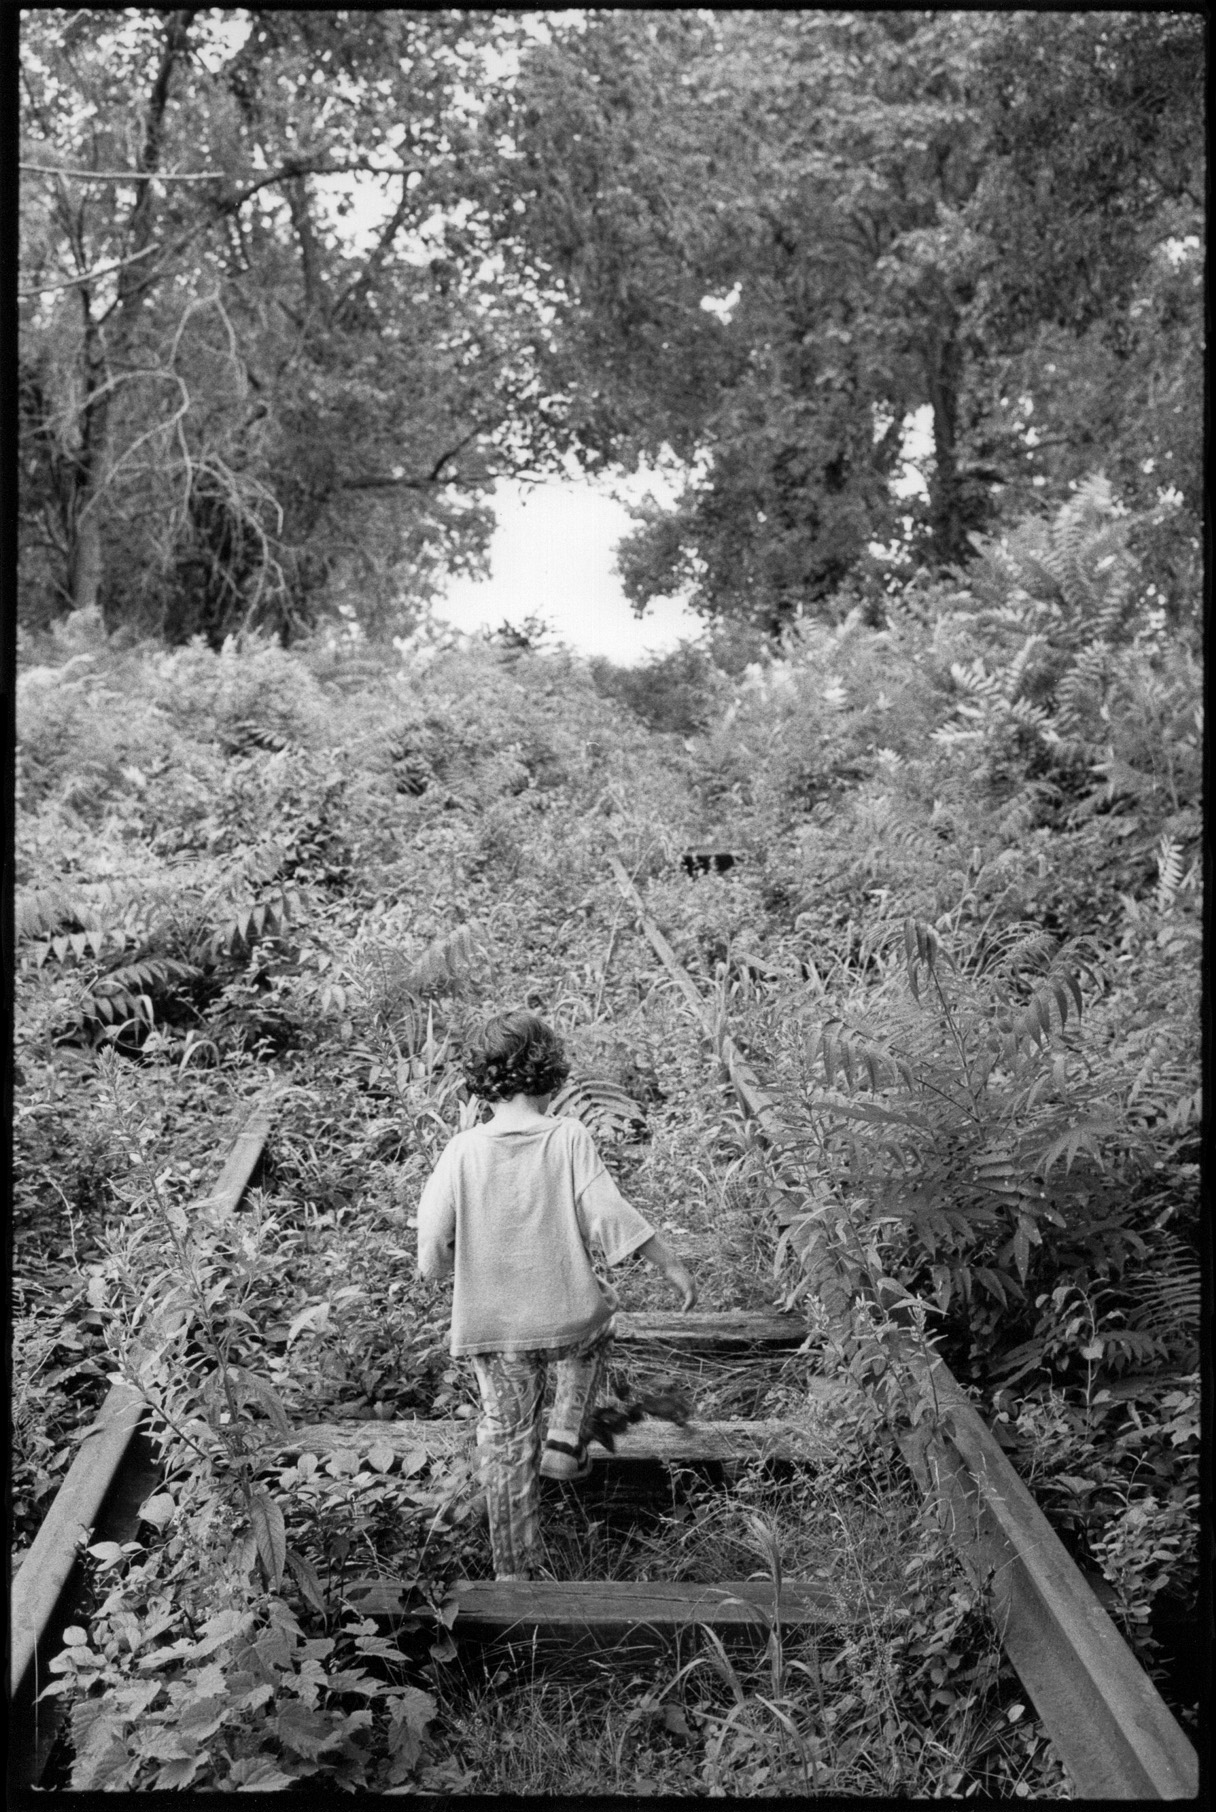 Chuck Fishman, 4-year-old boy walking along deserted railroad tracks overgrown with foliage, Bearsville, New York, August 1994 11x14""